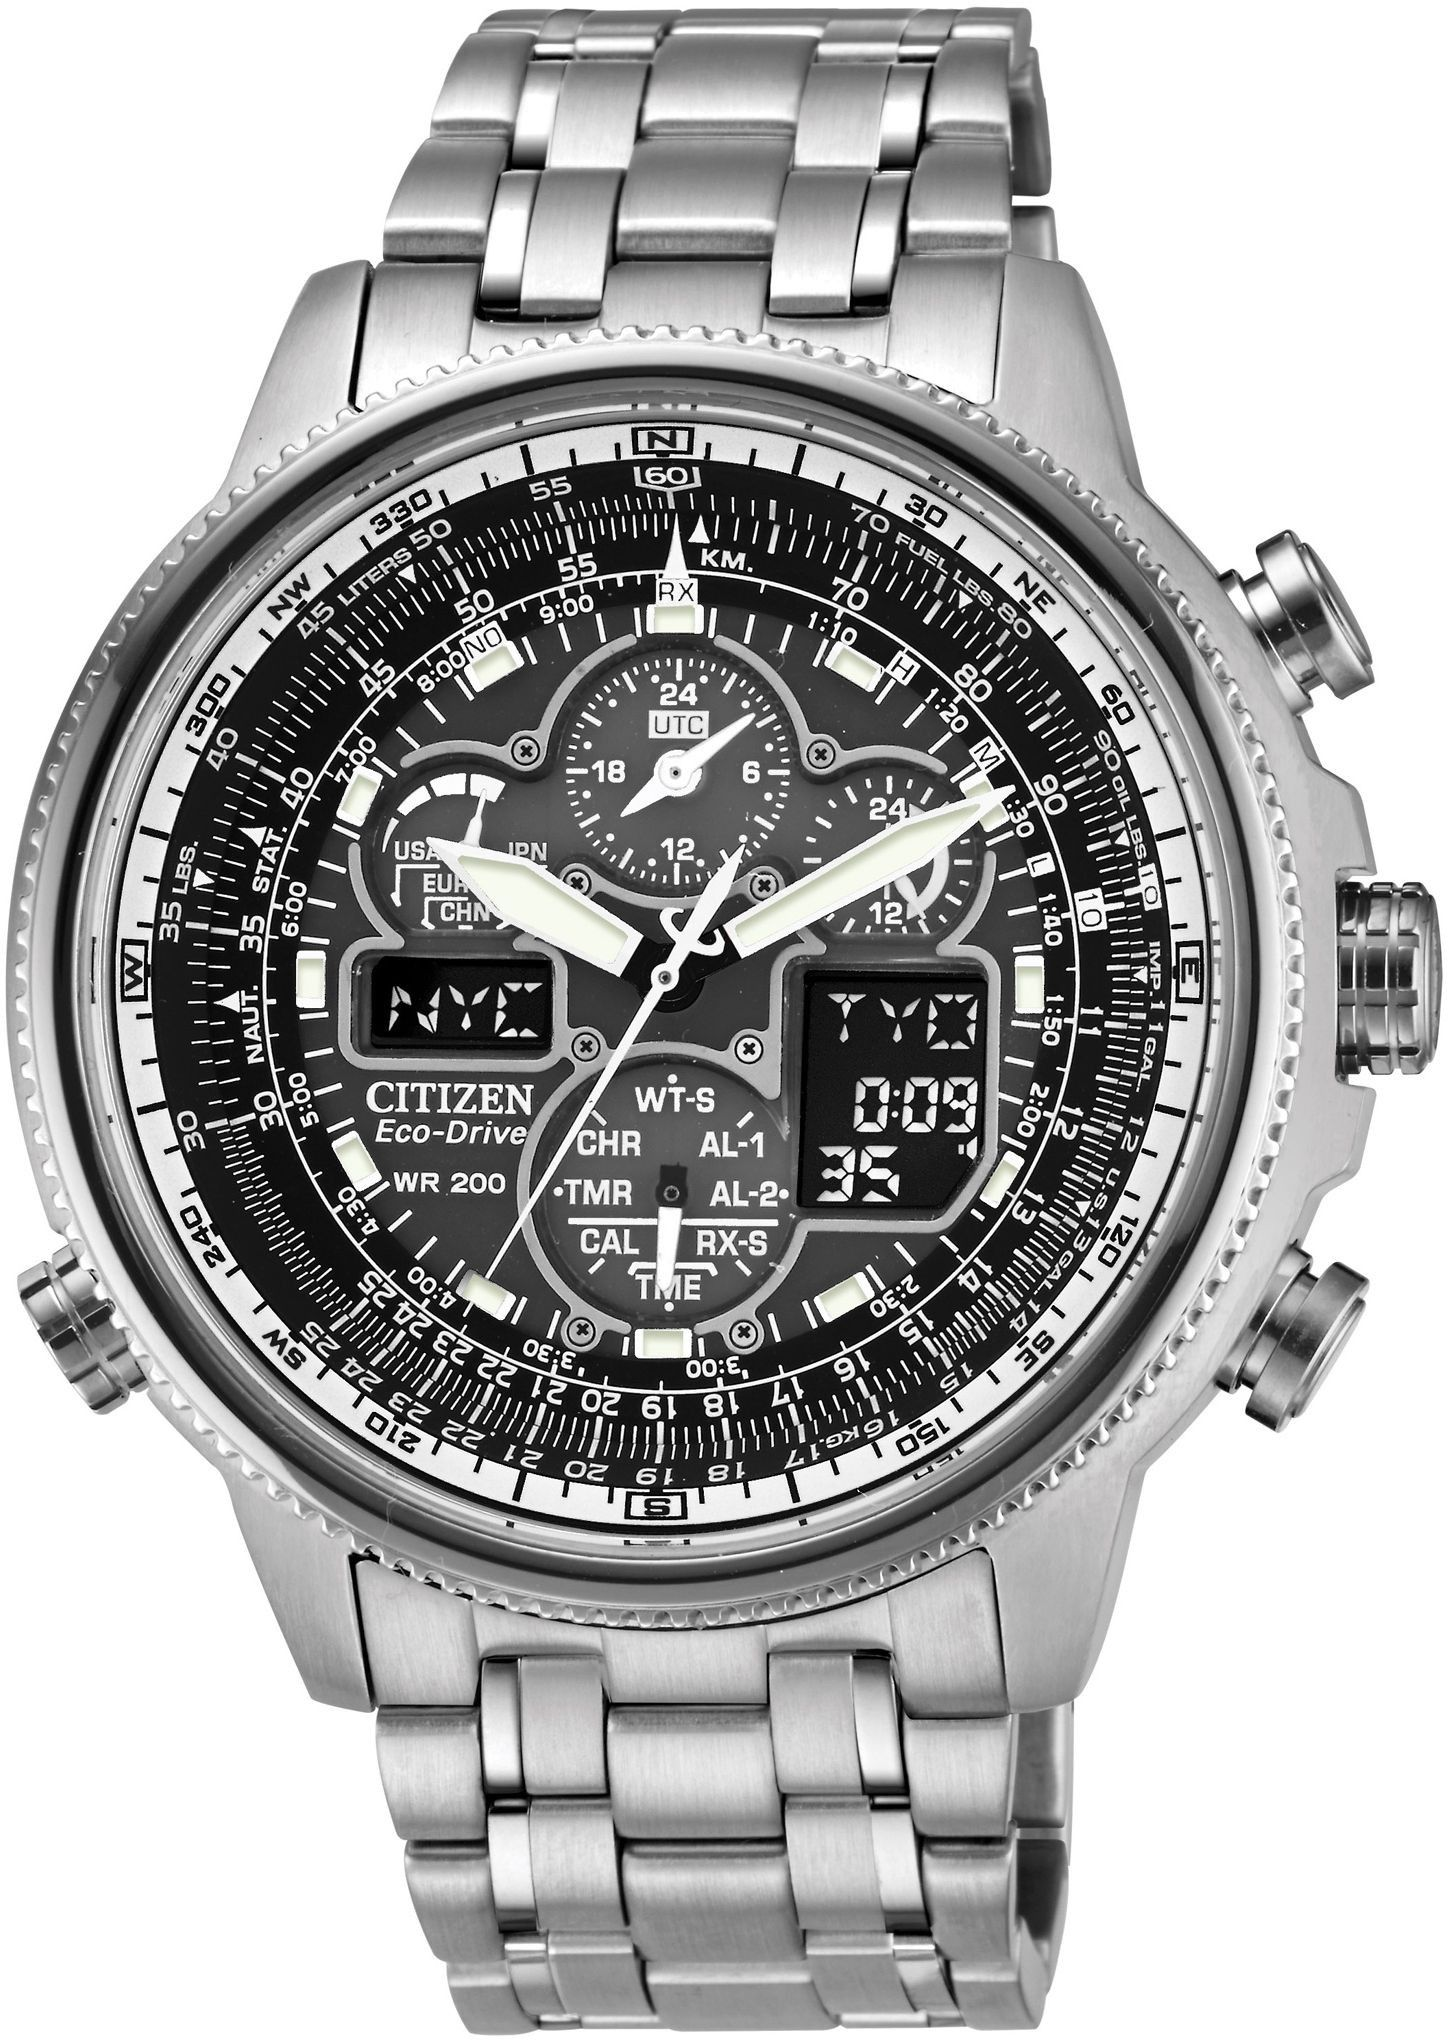 7ba5400f298 Citizen Eco-Drive Navihawk Global Radio Controlled Pilots Watch JY8030-59E